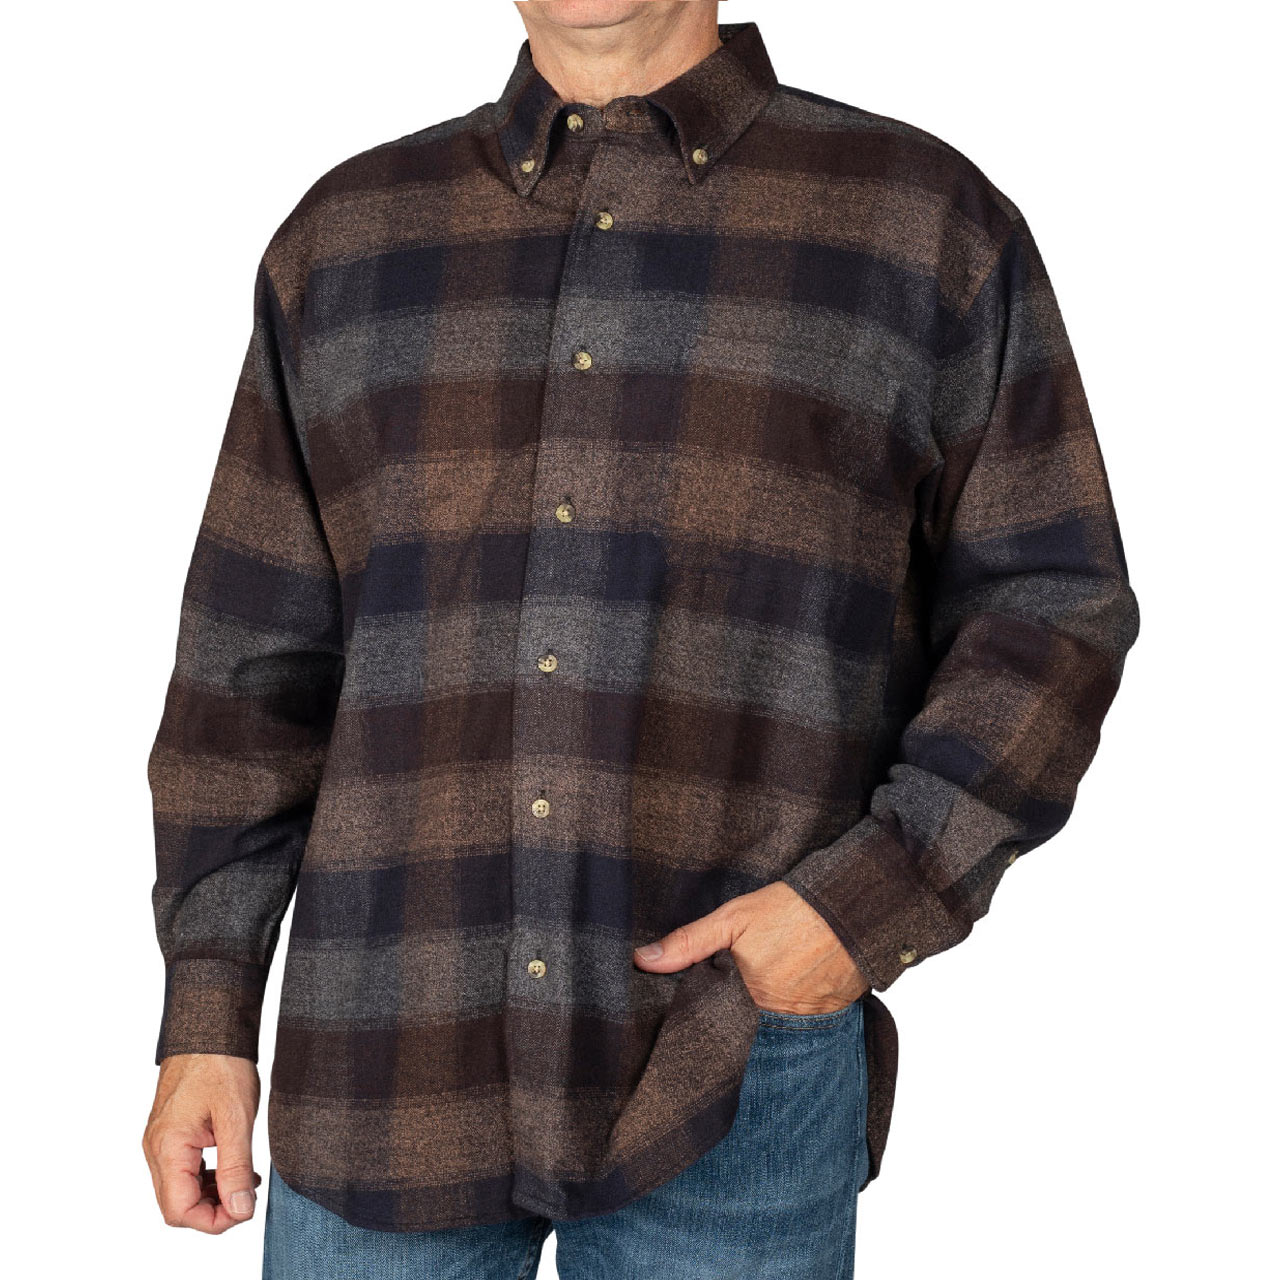 Men's Woodland Trail By Palmland Long Sleeve 100% Cotton Woven Plaid Flannel Shirt #5900-310 Brown